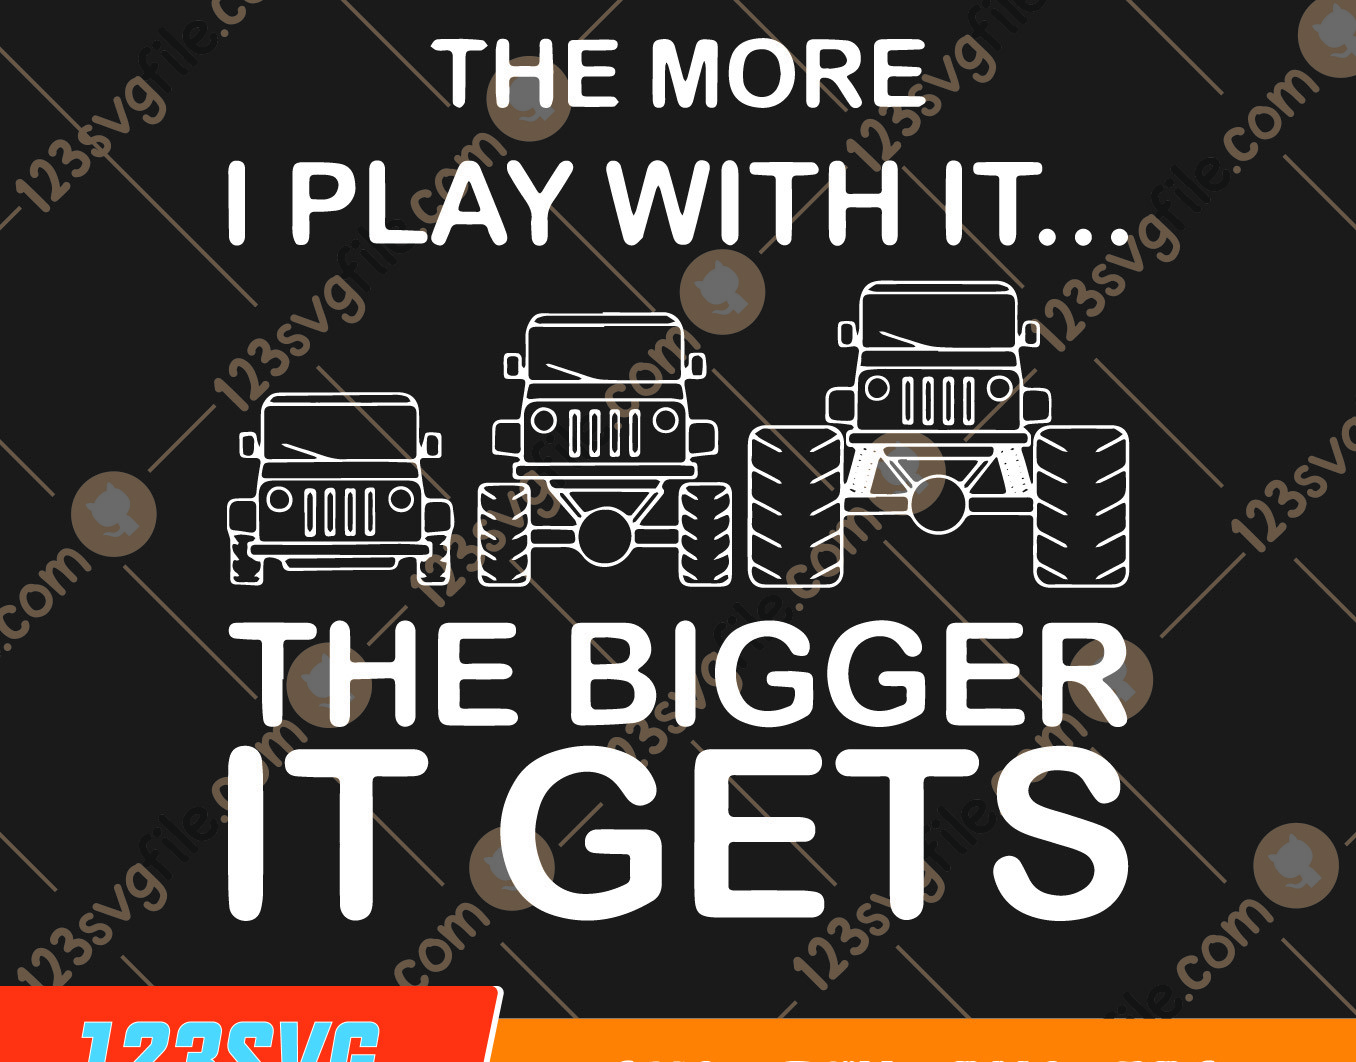 Funny Jeep The More I Play With It…Bigger It Gets SVG PNG DXF EPS - Funny Jeep The More I Play With It%E2%80%A6Bigger It Gets SVG PNG DXF EPS -